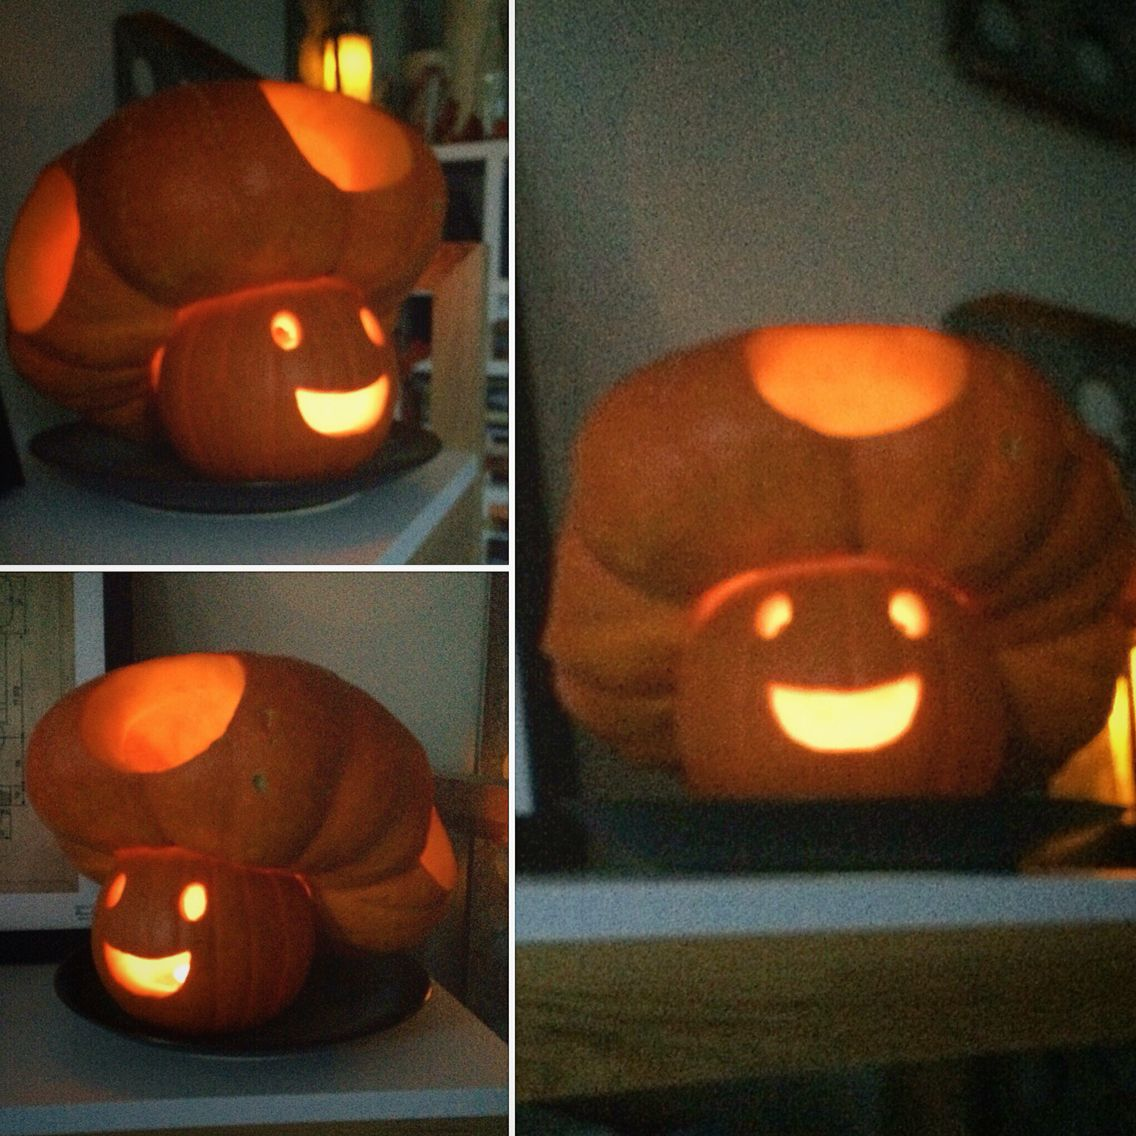 Toad Pumpkin Best Fall Carving Super Simple And Too Cute Yay For Mario Bros Nerdy Pumpkins